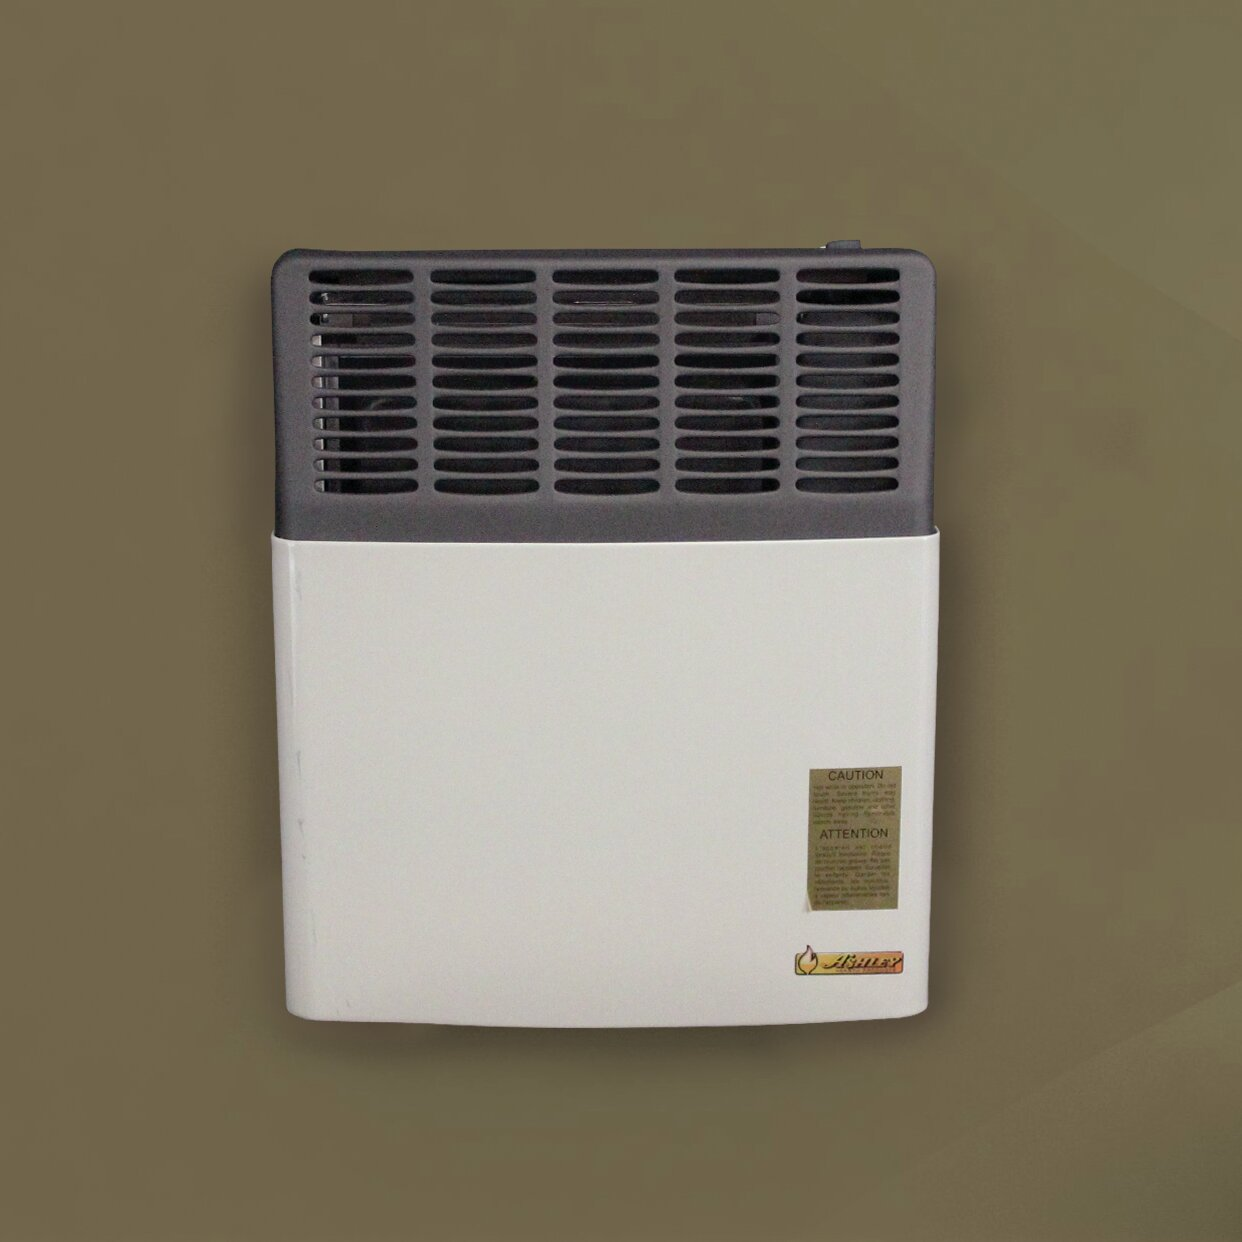 Bathroom Wall Heaters Electric Lowes: Ashley Hearth 11,000 BTU Natural Gas Direct Vent Heater